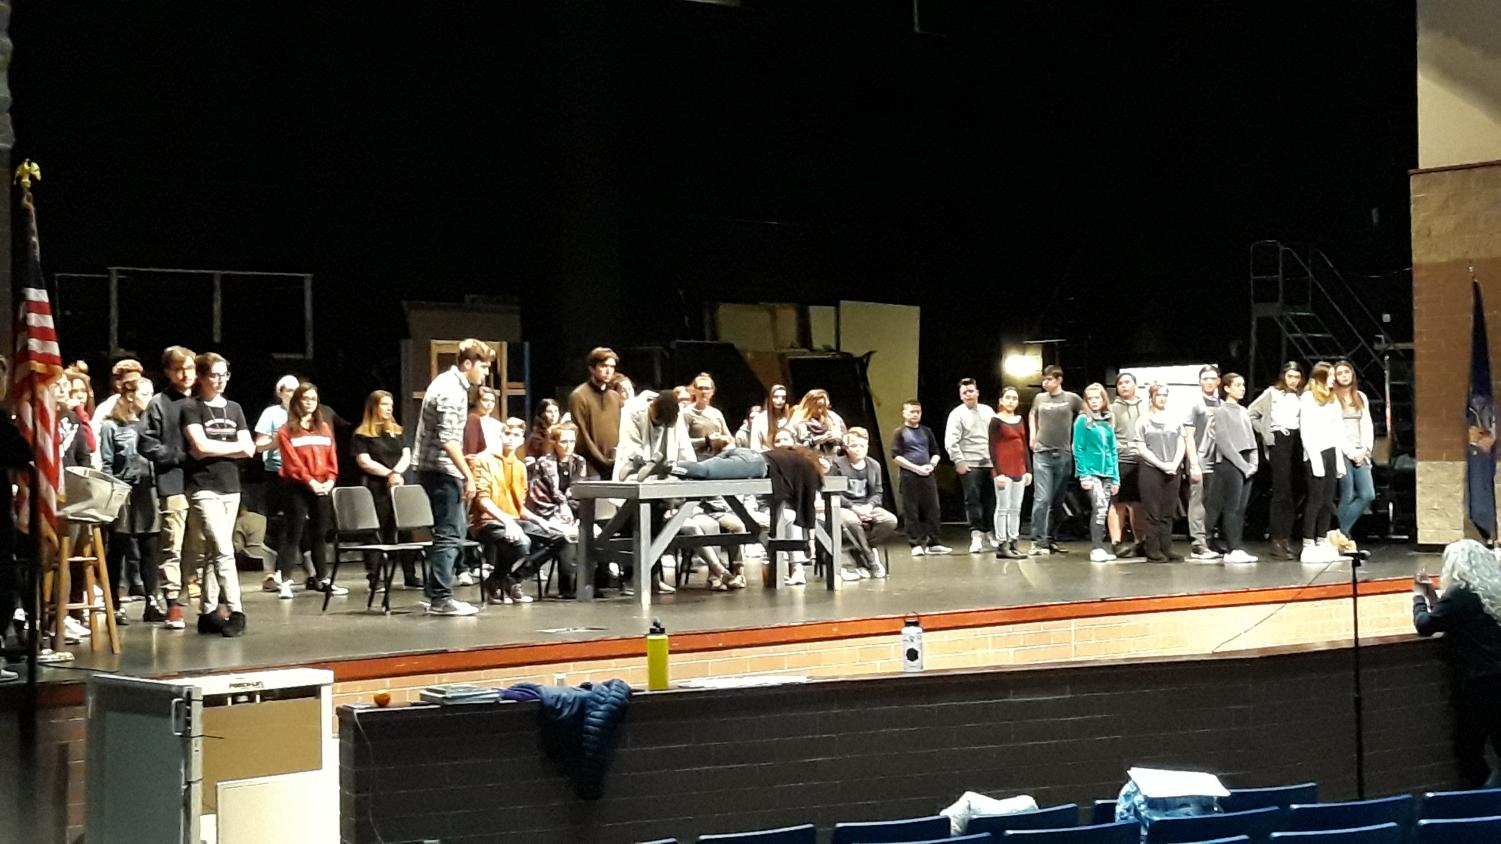 The spring musical had rehearsal on Wednesday, January 16th. They are rehearsing a scene from The Addams Family with the whole cast on stage.